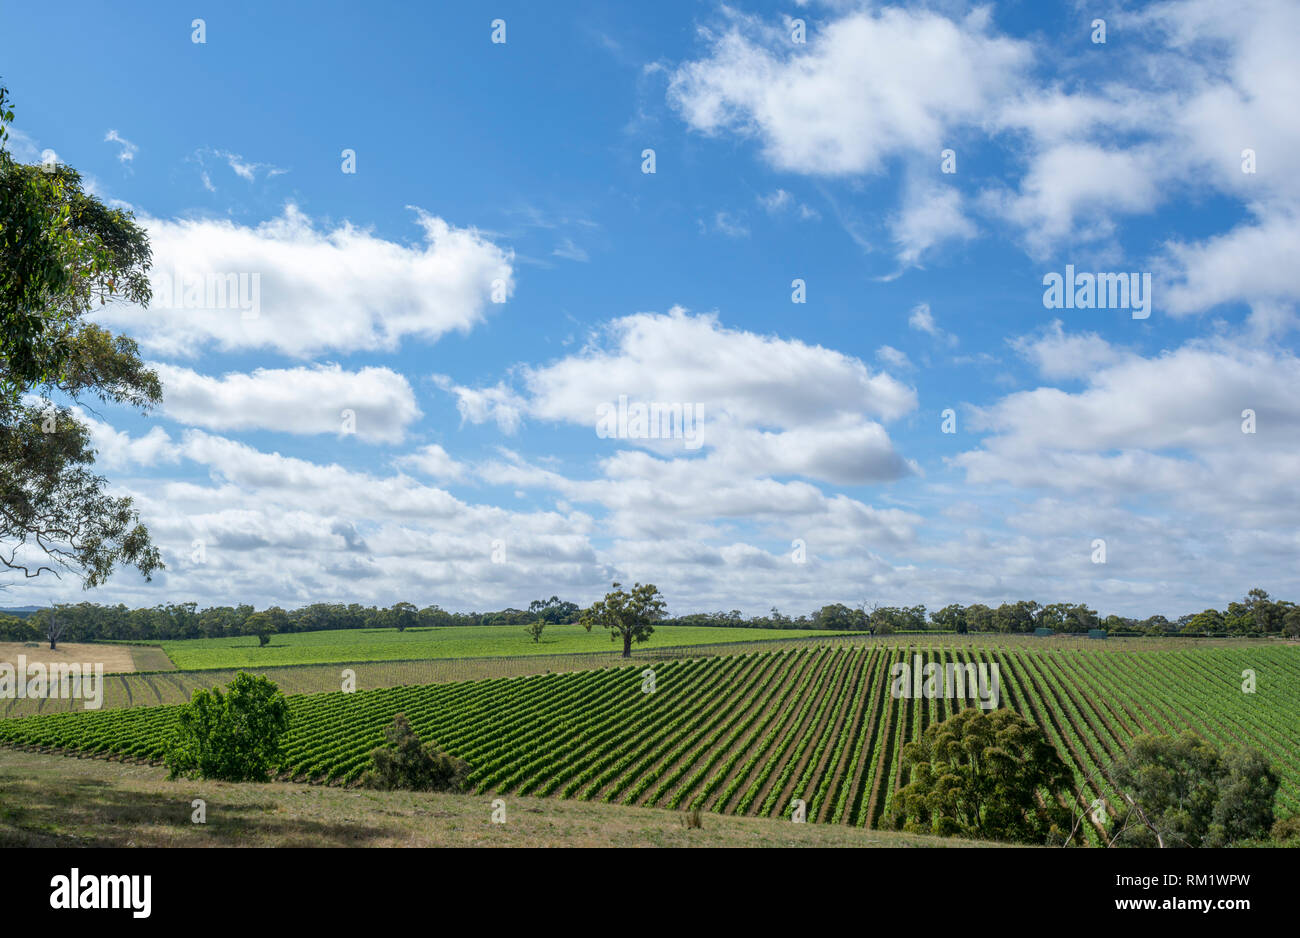 Random vineyards near Echunga, South Australia showing off it's vast rows of grape vines. - Stock Image